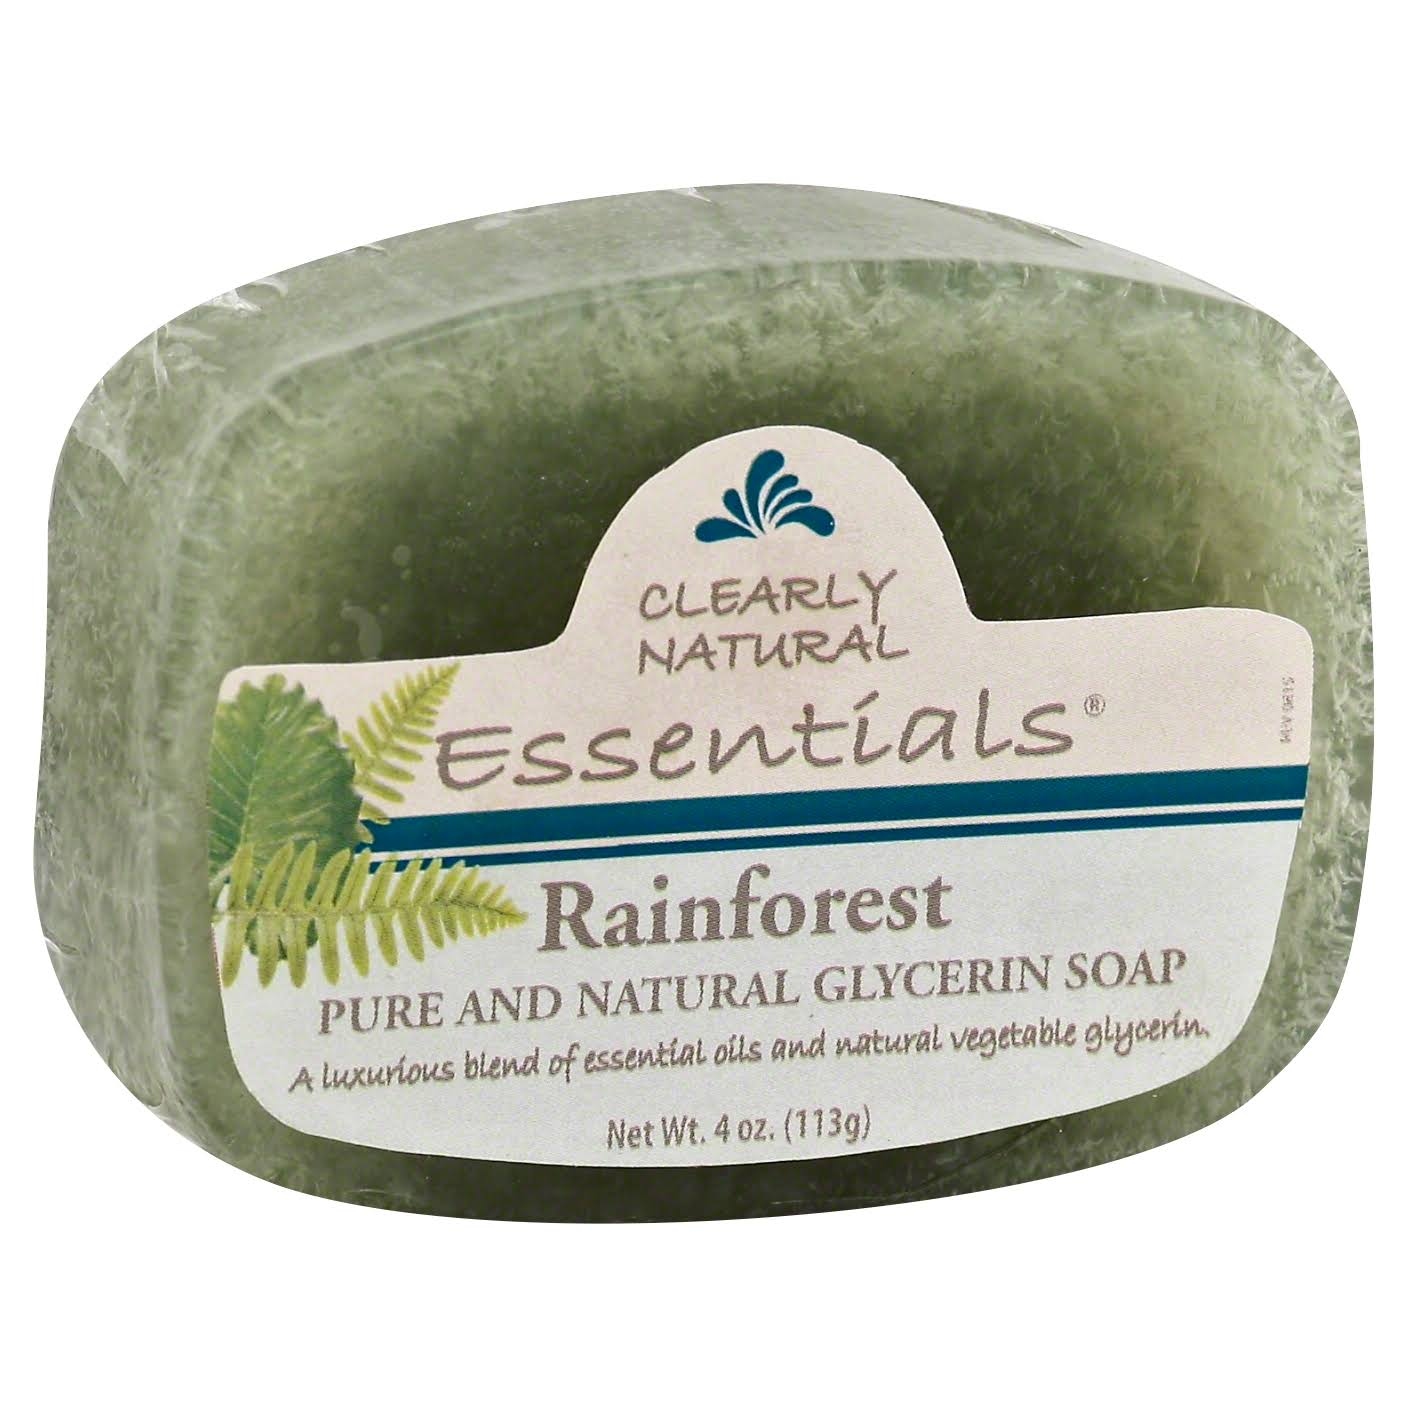 Clearly Natural Glycerine Soap - Rainforest